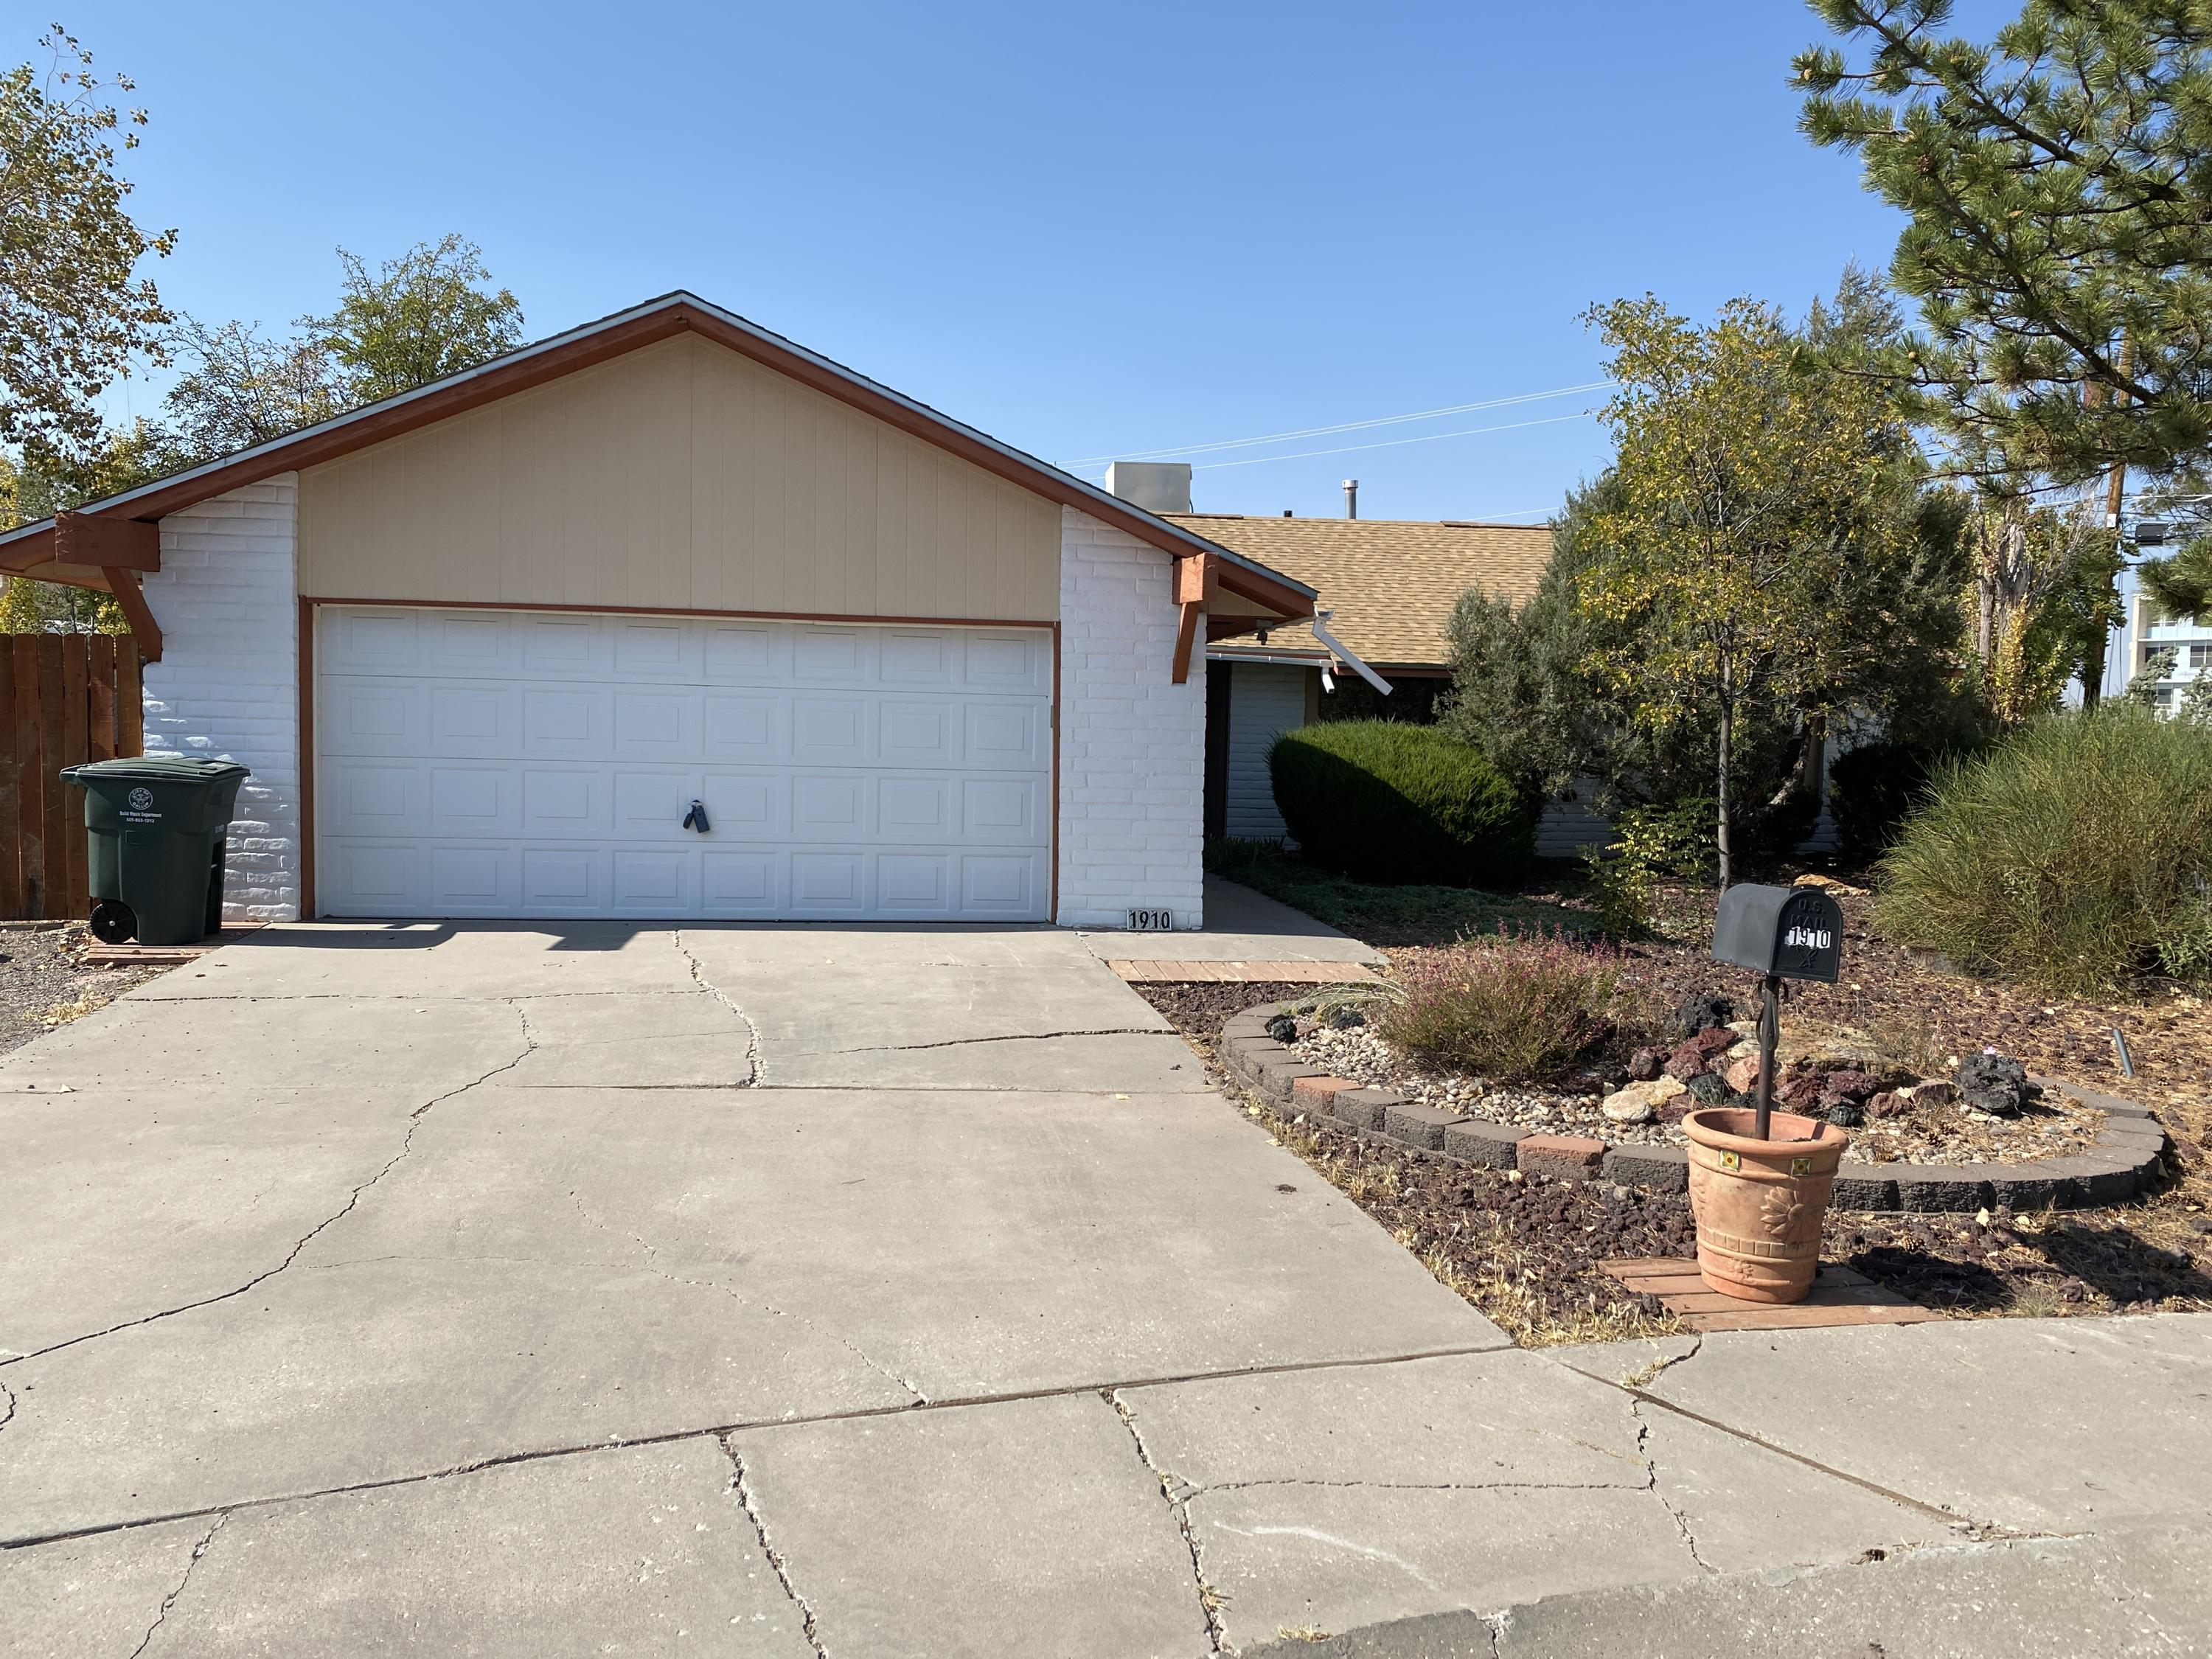 1910 MOUNTAIN VIEW Drive Property Photo - Gallup, NM real estate listing